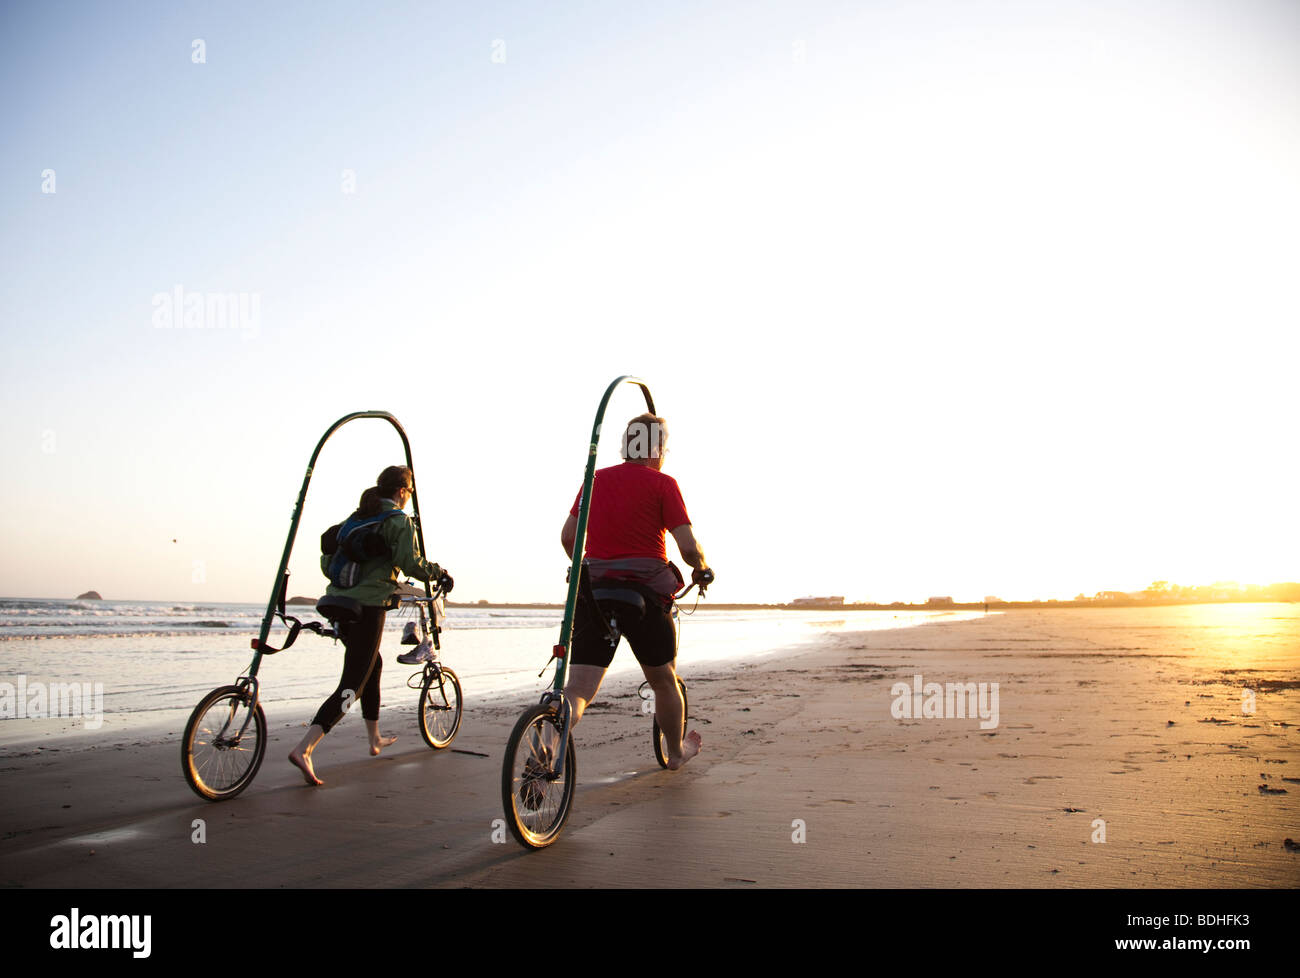 A new form of bicycle is tested on the beach at sunset. - Stock Image